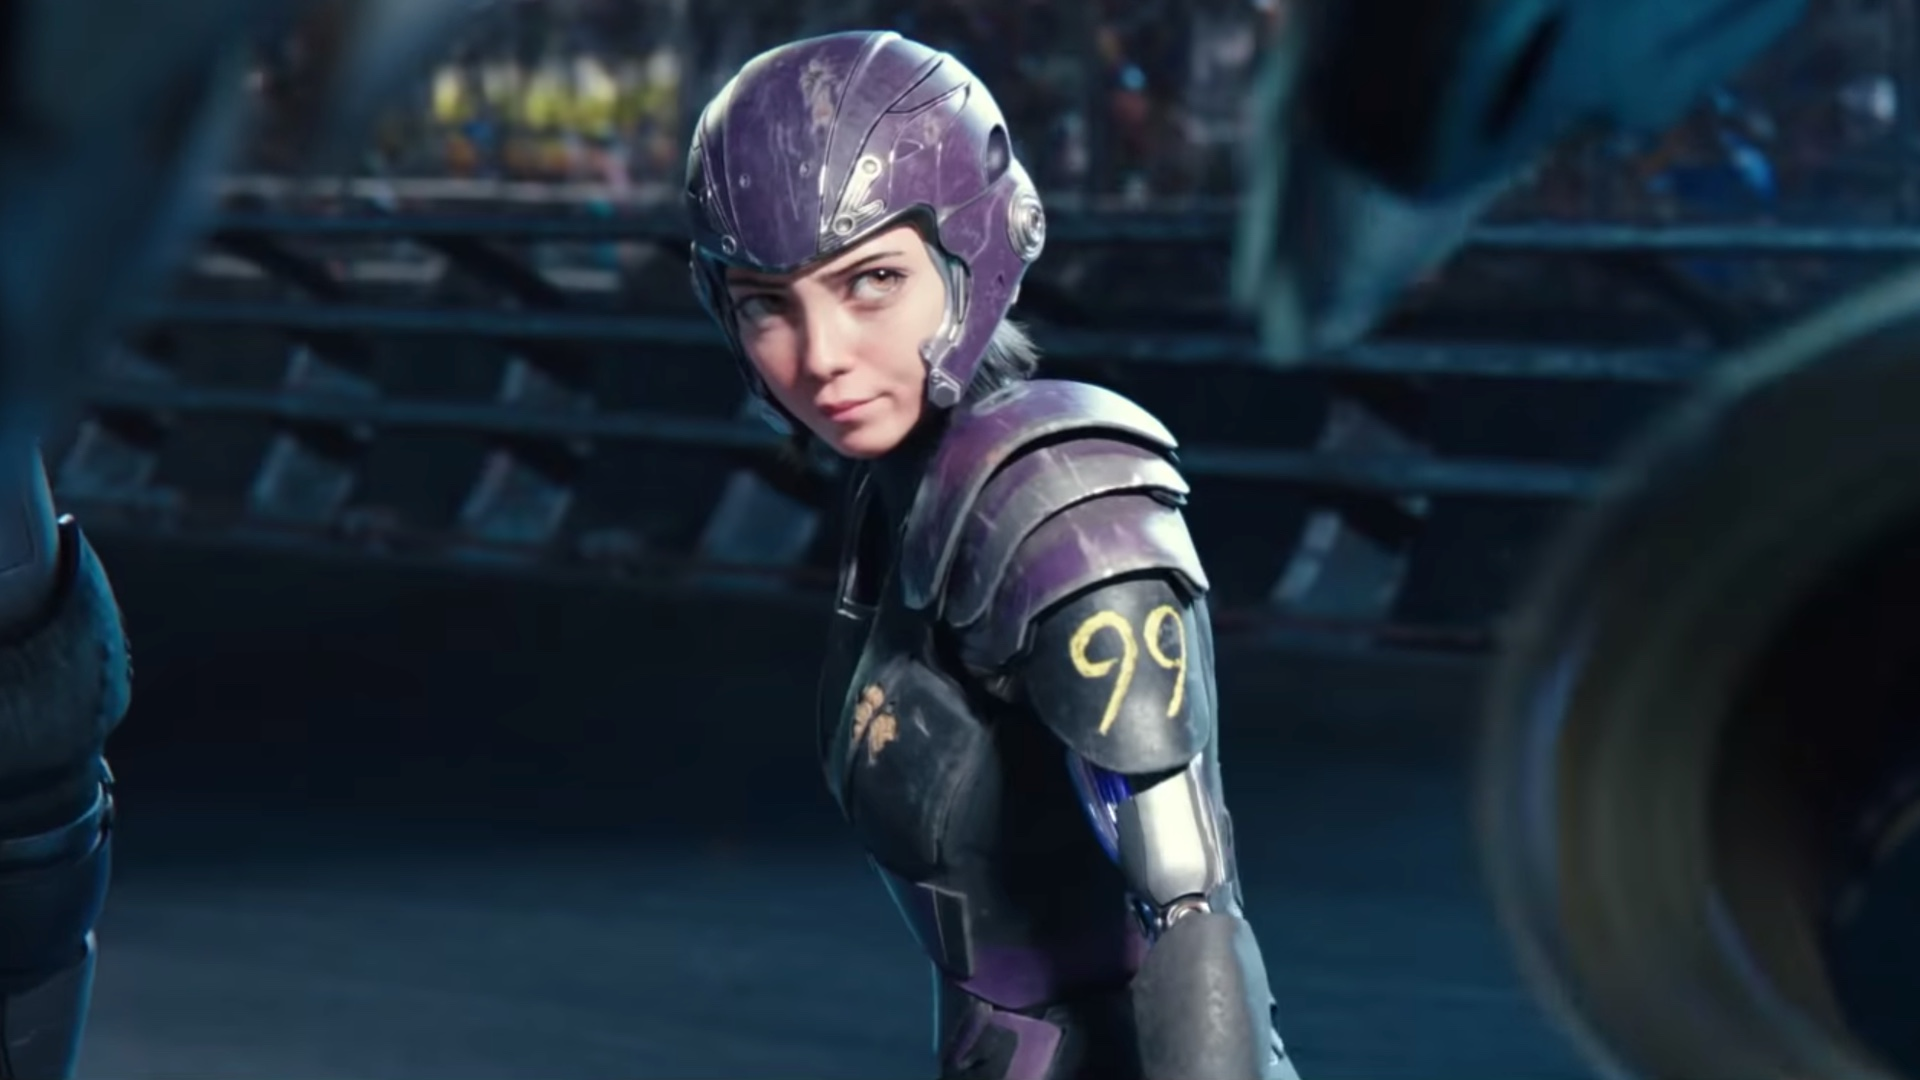 Watch Some Badass Motorball Action In Clip From Alita Battle